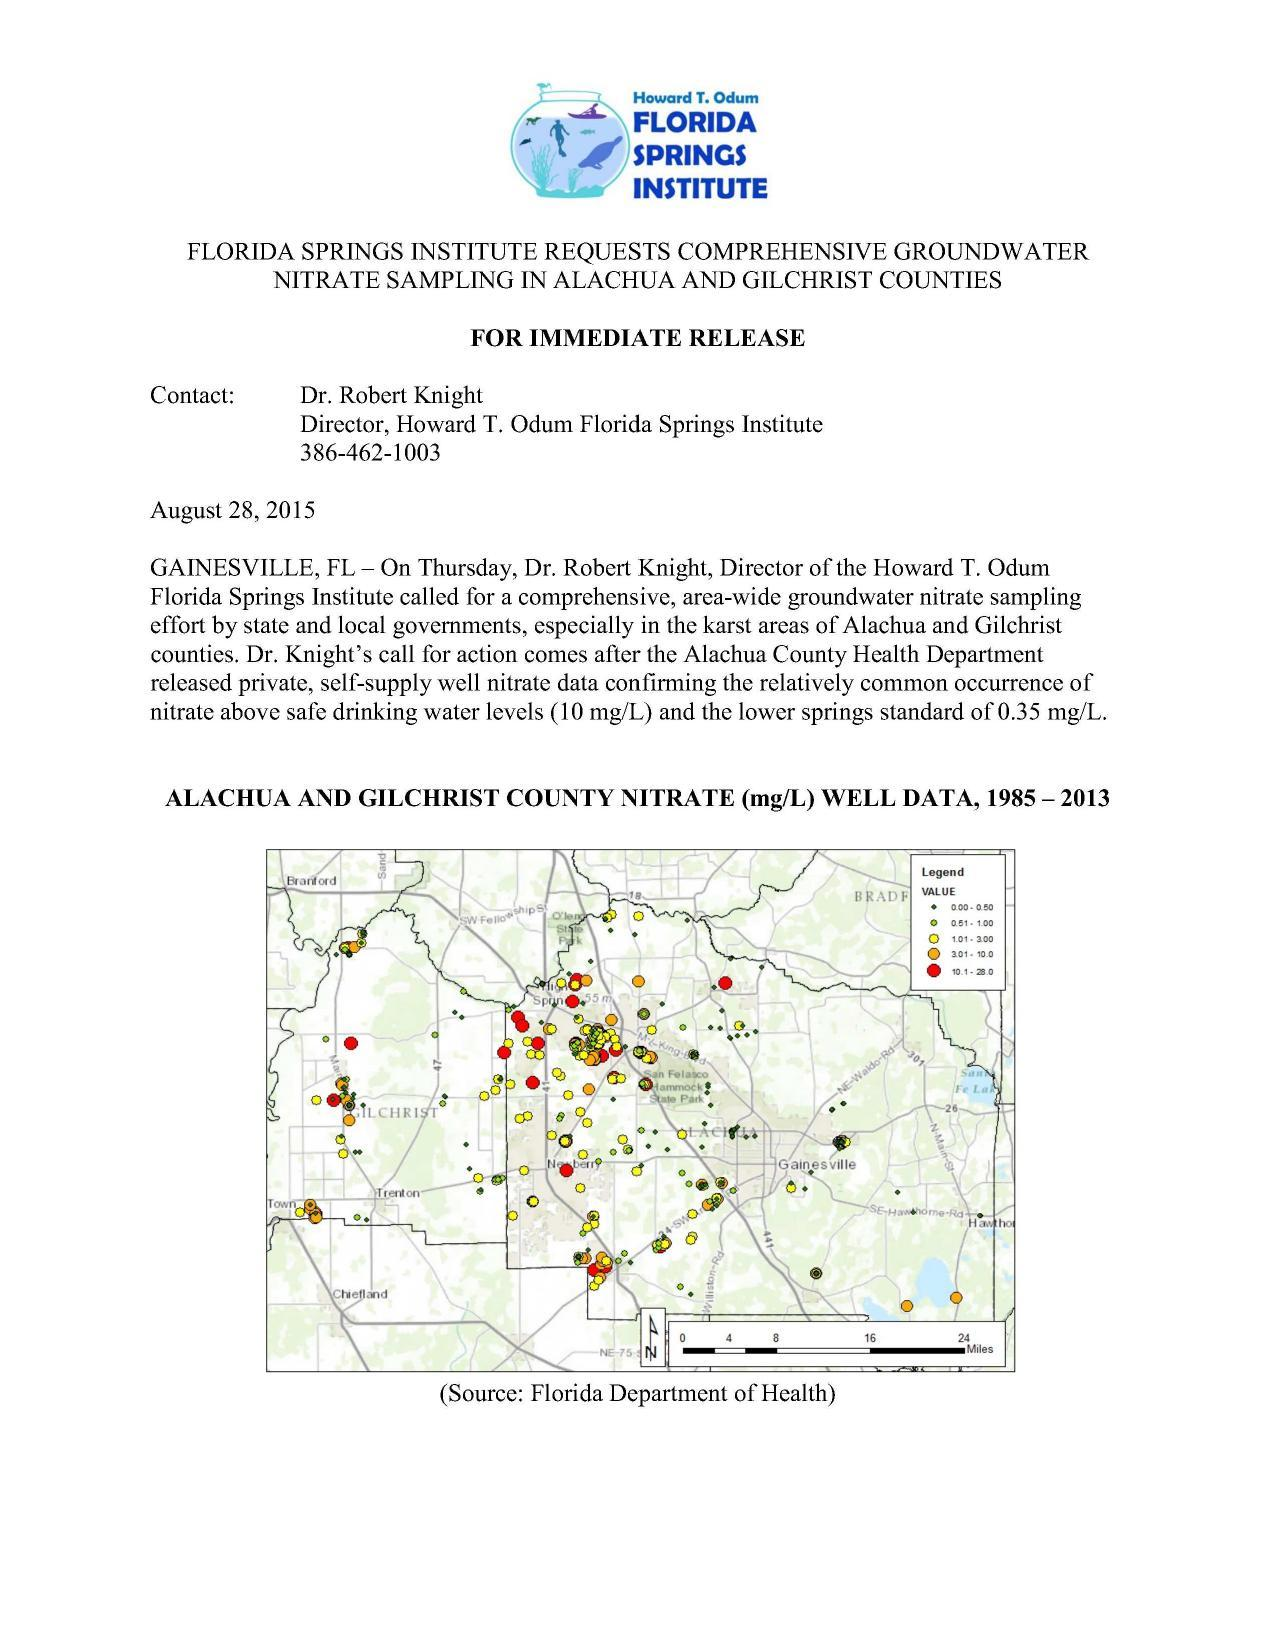 1275x1650 FSI requests page 1, in Requests comprehensive groundwater nitrate sampling in Alachua and Gilchrist Counties, by Florida Springs Institute, 28 August 2015